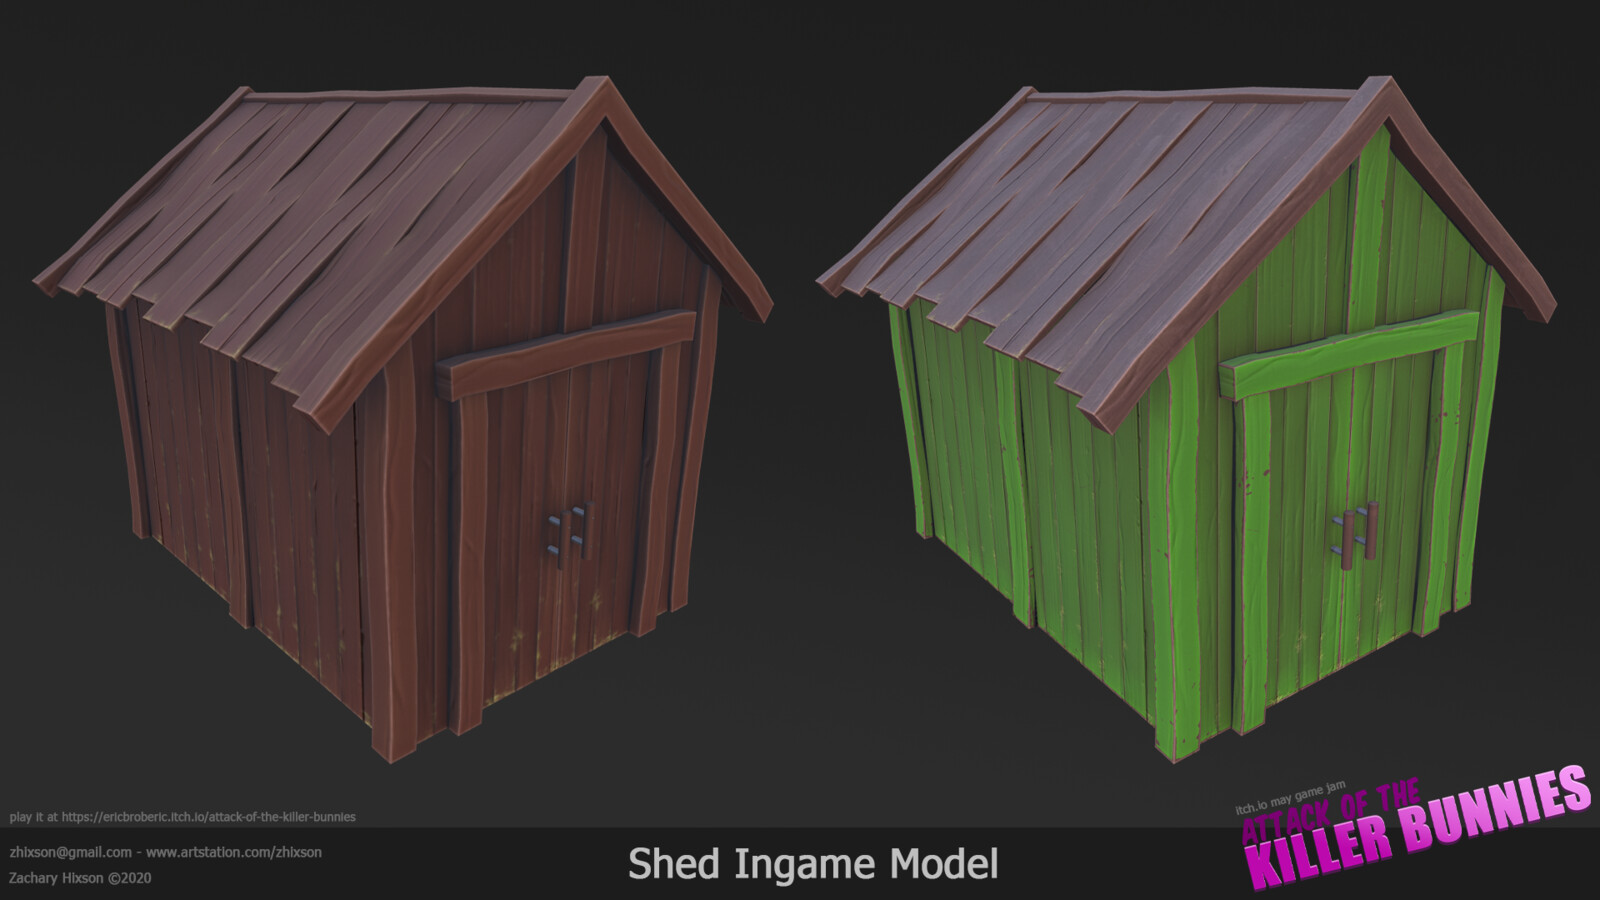 I was only responsible for the texturing of this shed. It was hastily done at the last minute in Substance Painter.